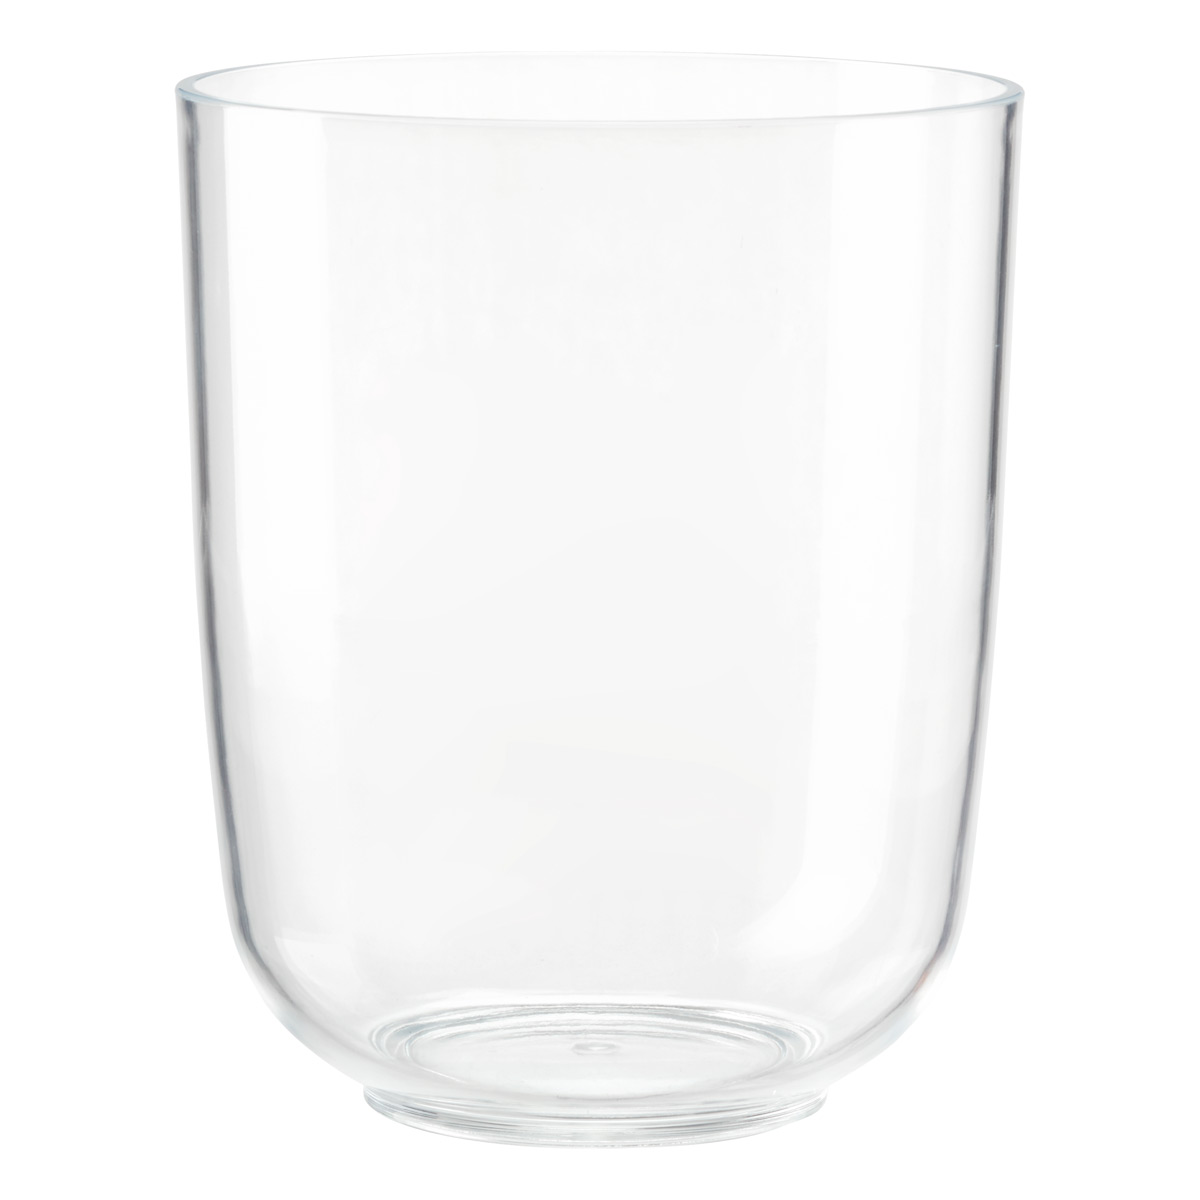 Cleara Acrylic Trash Can